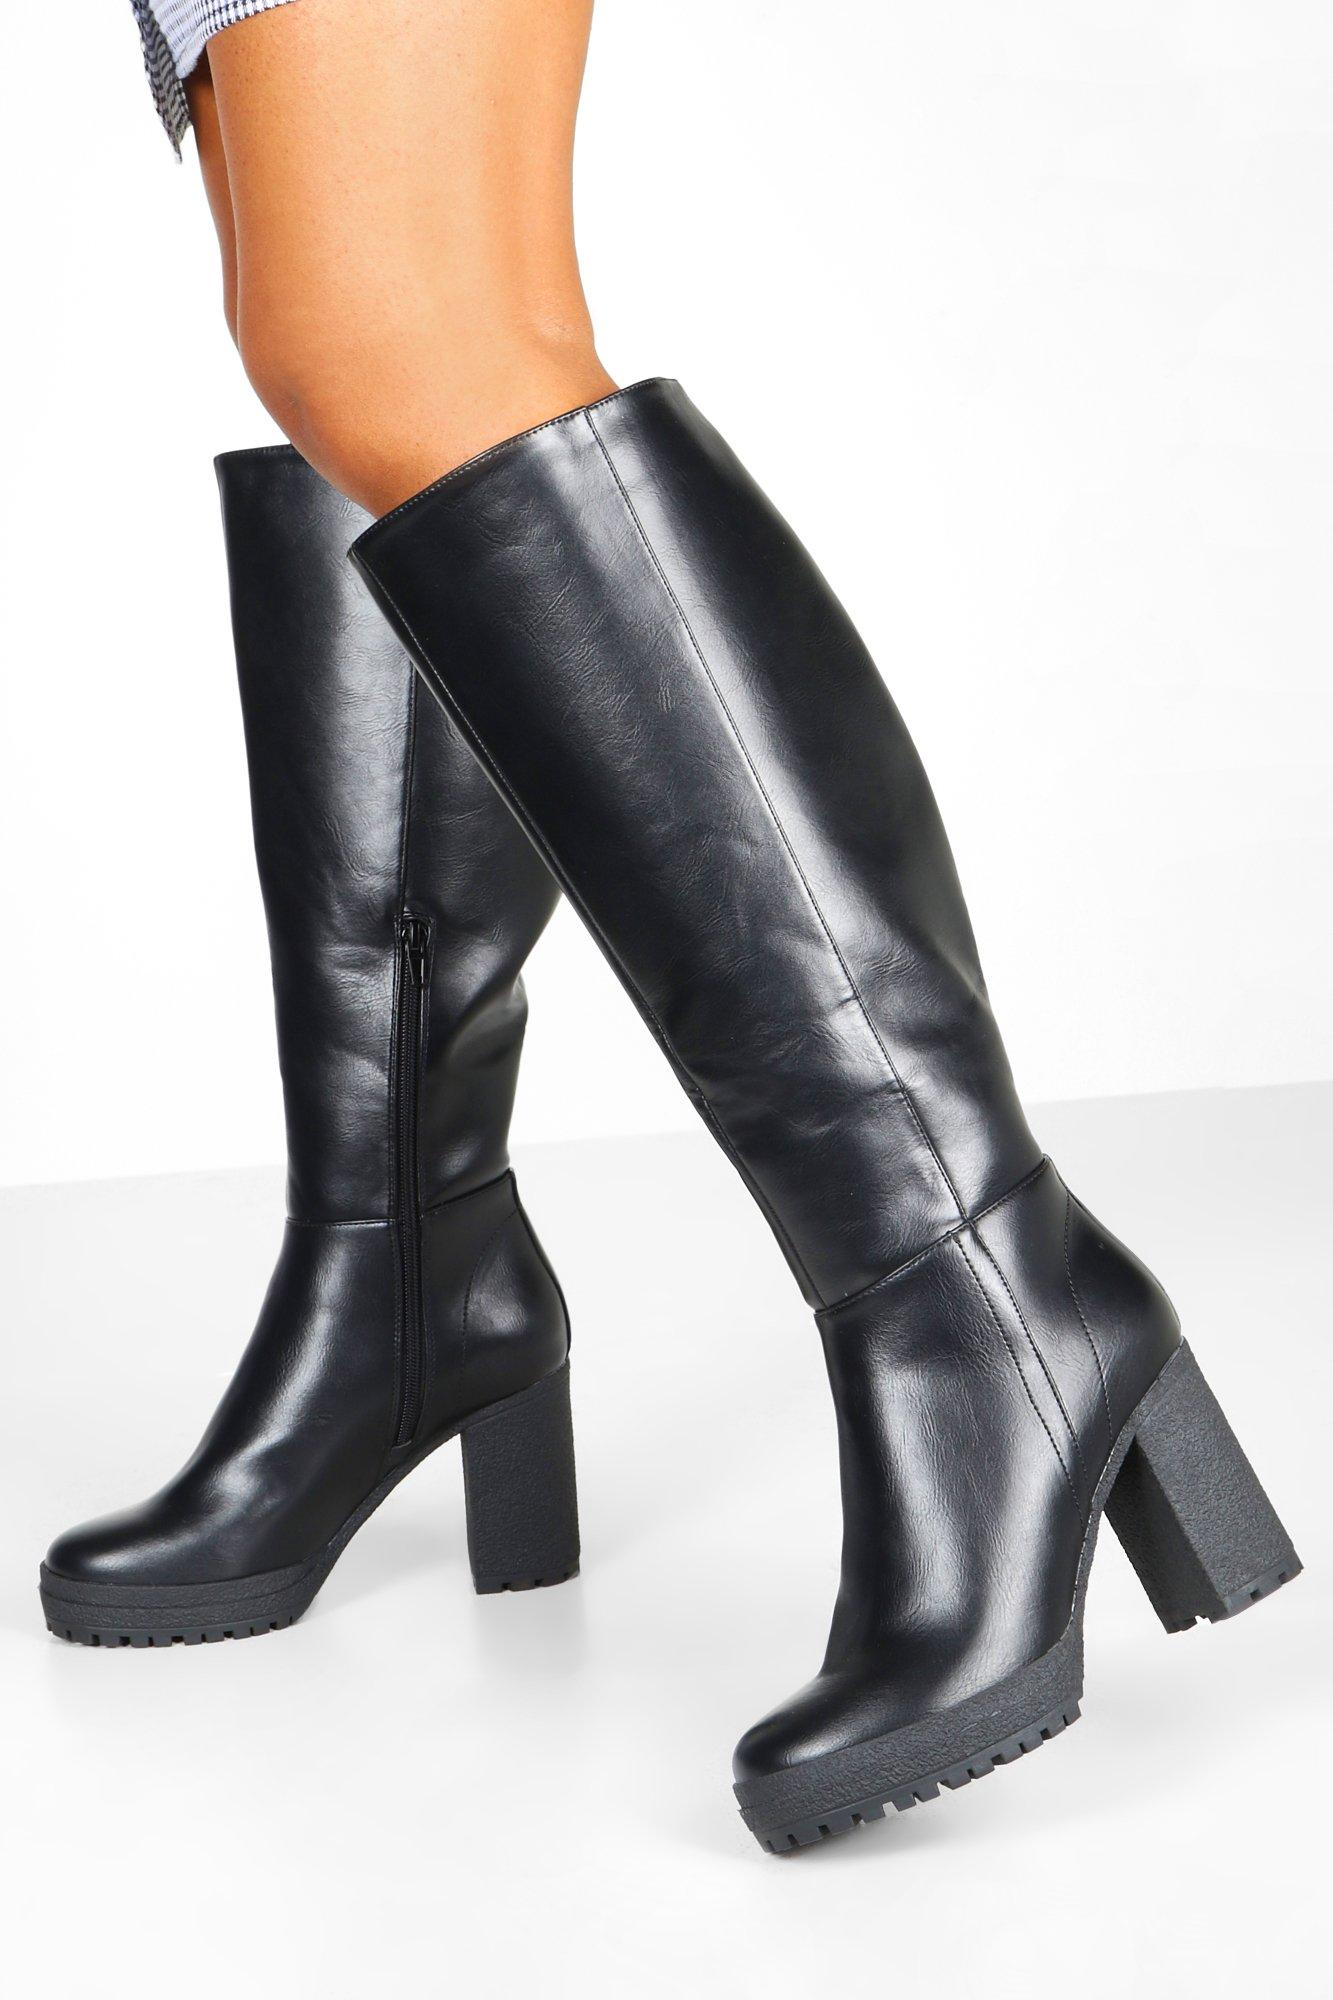 boohoo Womens Chunky Cleated Over The Knee Boots - Black - 7, Black